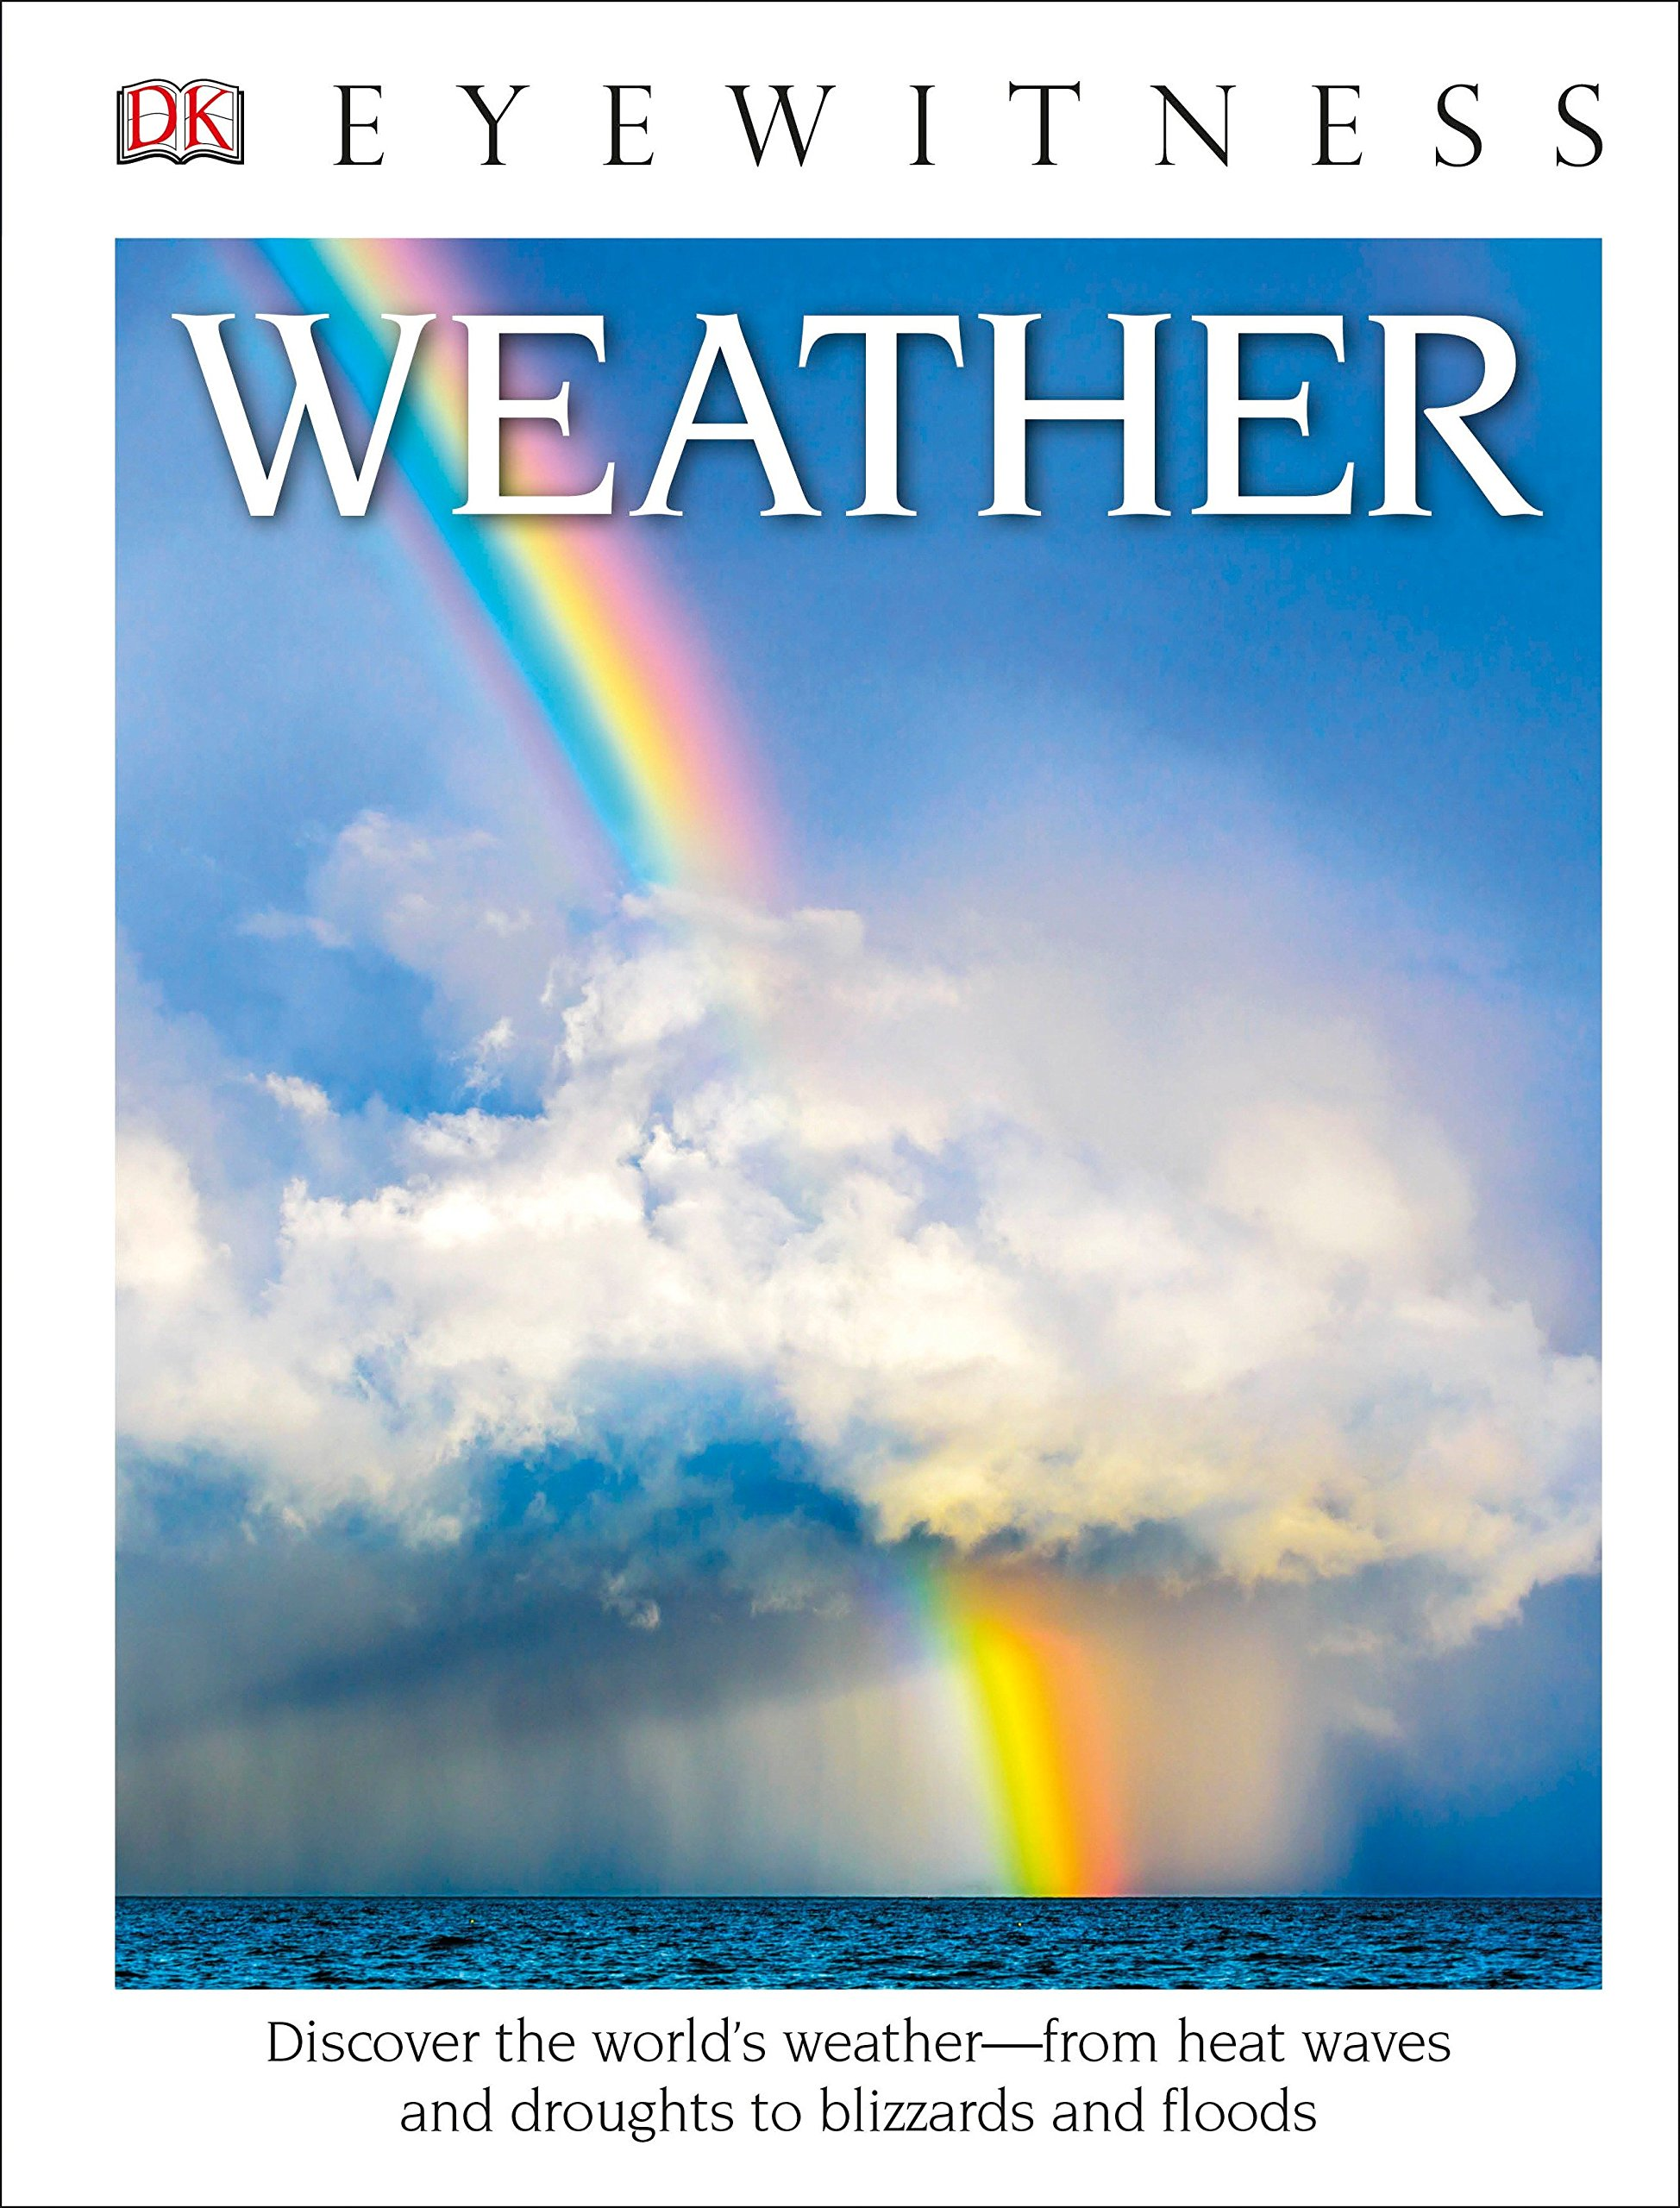 DK Eyewitness Books: Weather: Discover the world's weather from heat waves and droughts to blizzards and flood PDF